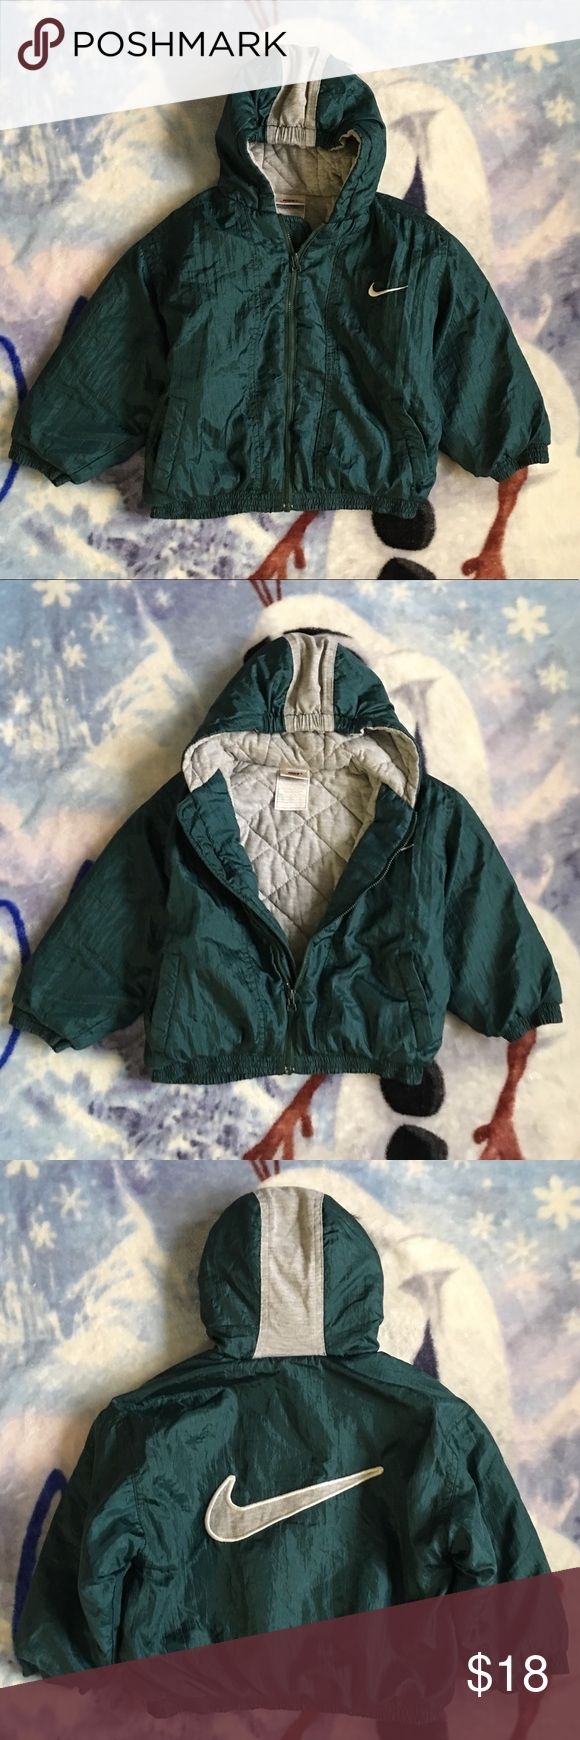 Green Nike Coat Size 4t Boy/Girl green hooded winter coat. Coat brand name is Nike.  Coat size is 4t. Jackets & Coats